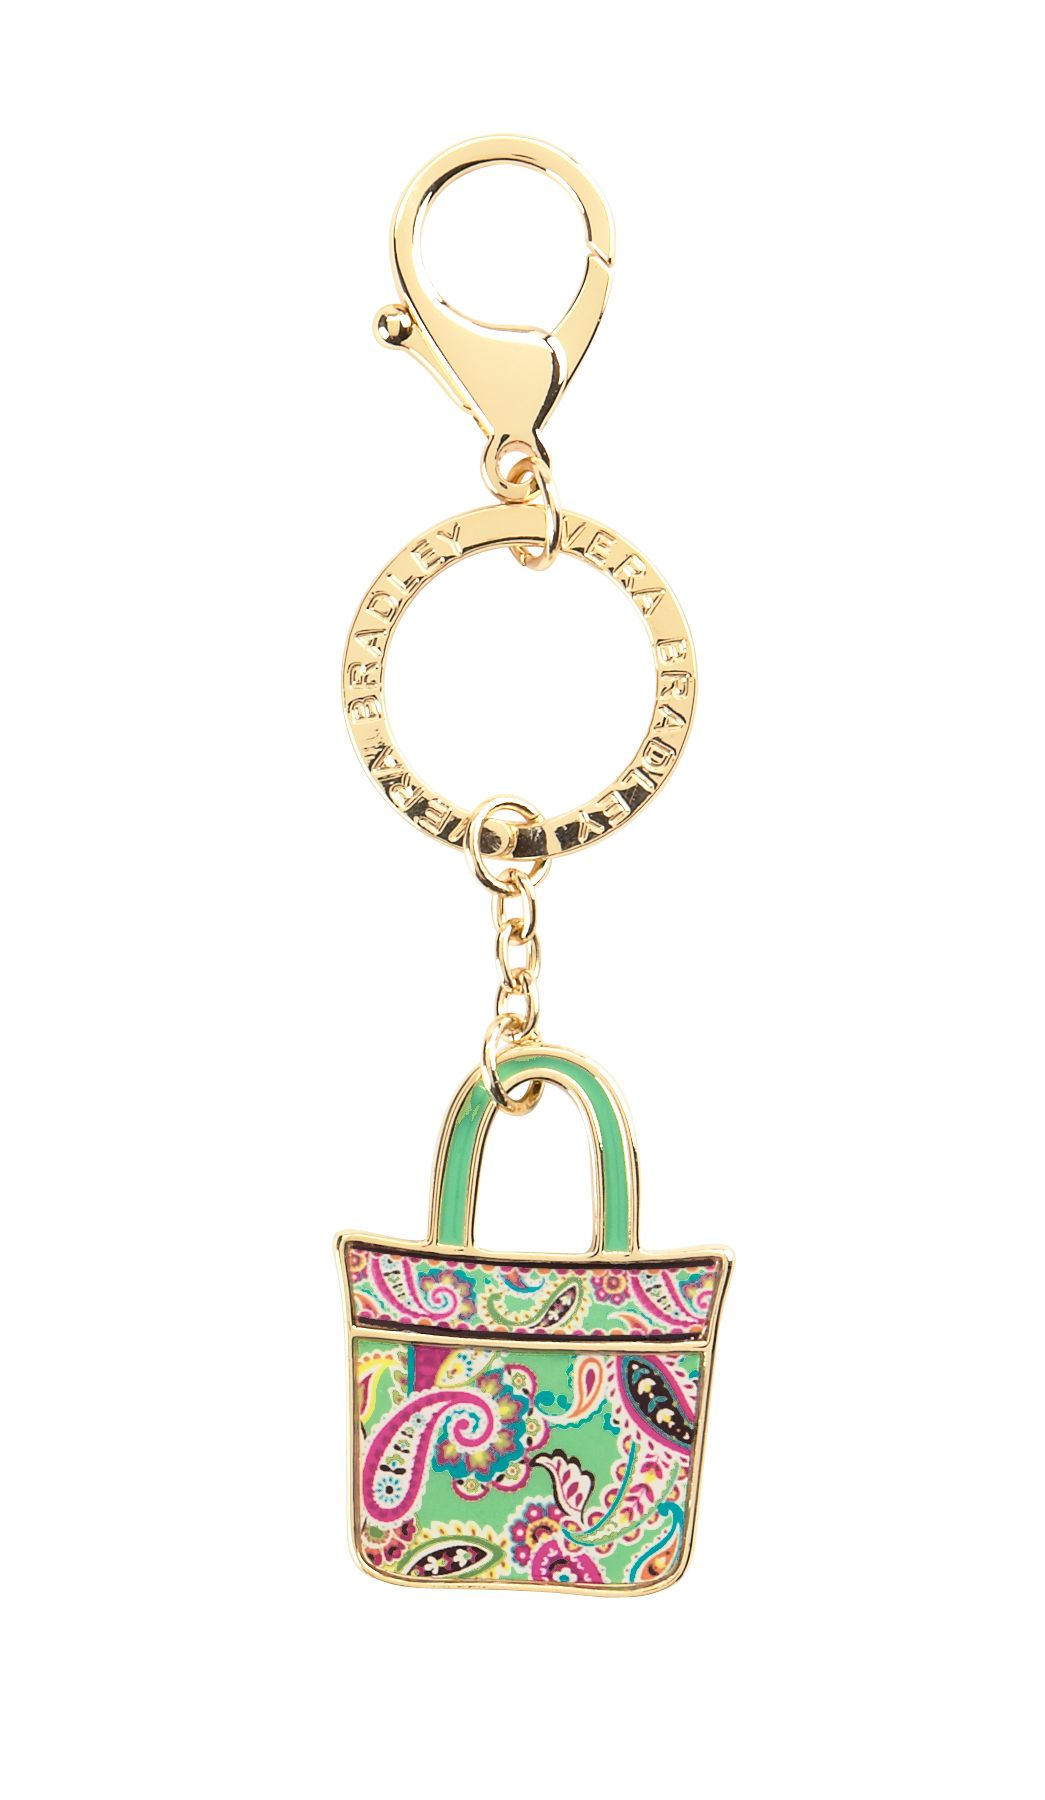 Vera Bradley Tote Around Keychain in Tutti Frutti $ 15.40